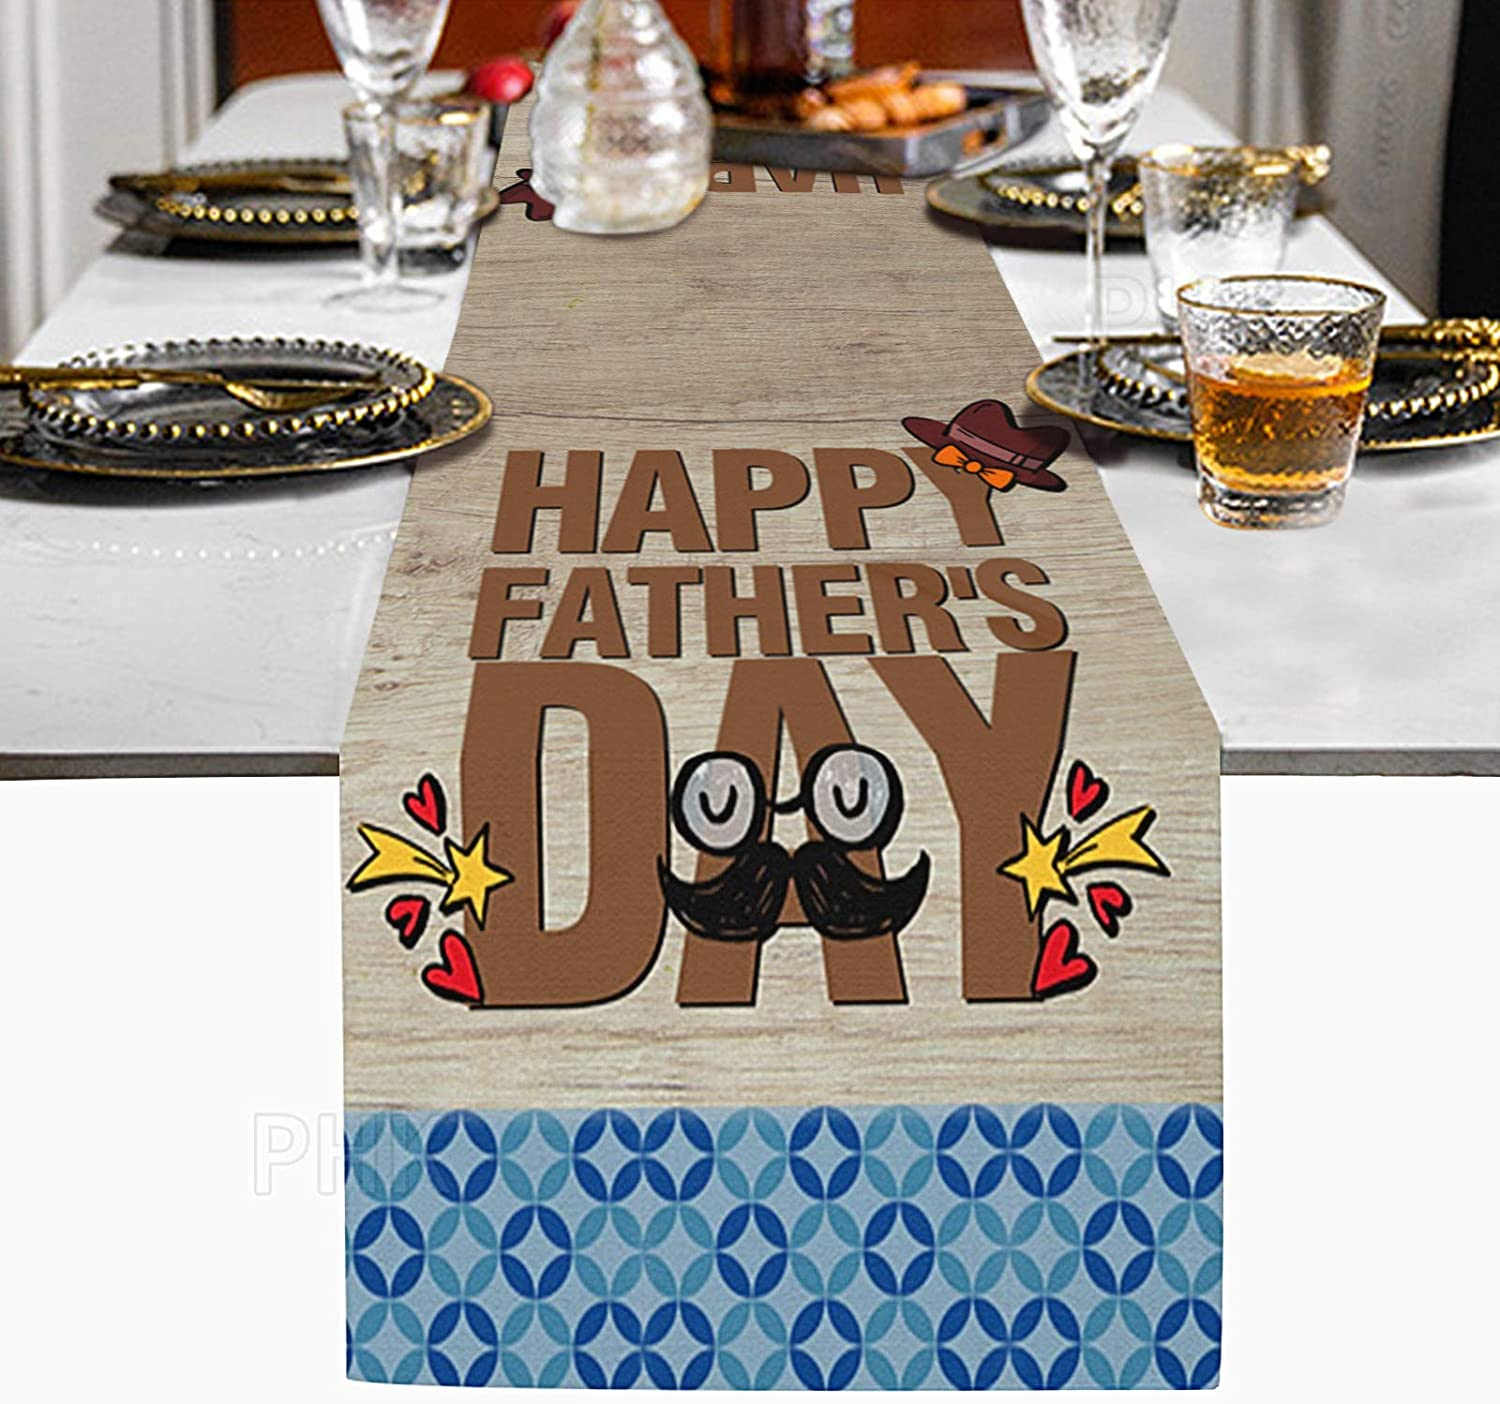 ziidoo Happy Father's Day Table Runners, Wood Grain Print Cotton Linen Table Runner for Dad, Home, Catering Events, Dinner Parties, Holiday Table Decorations 13 x 72 inch